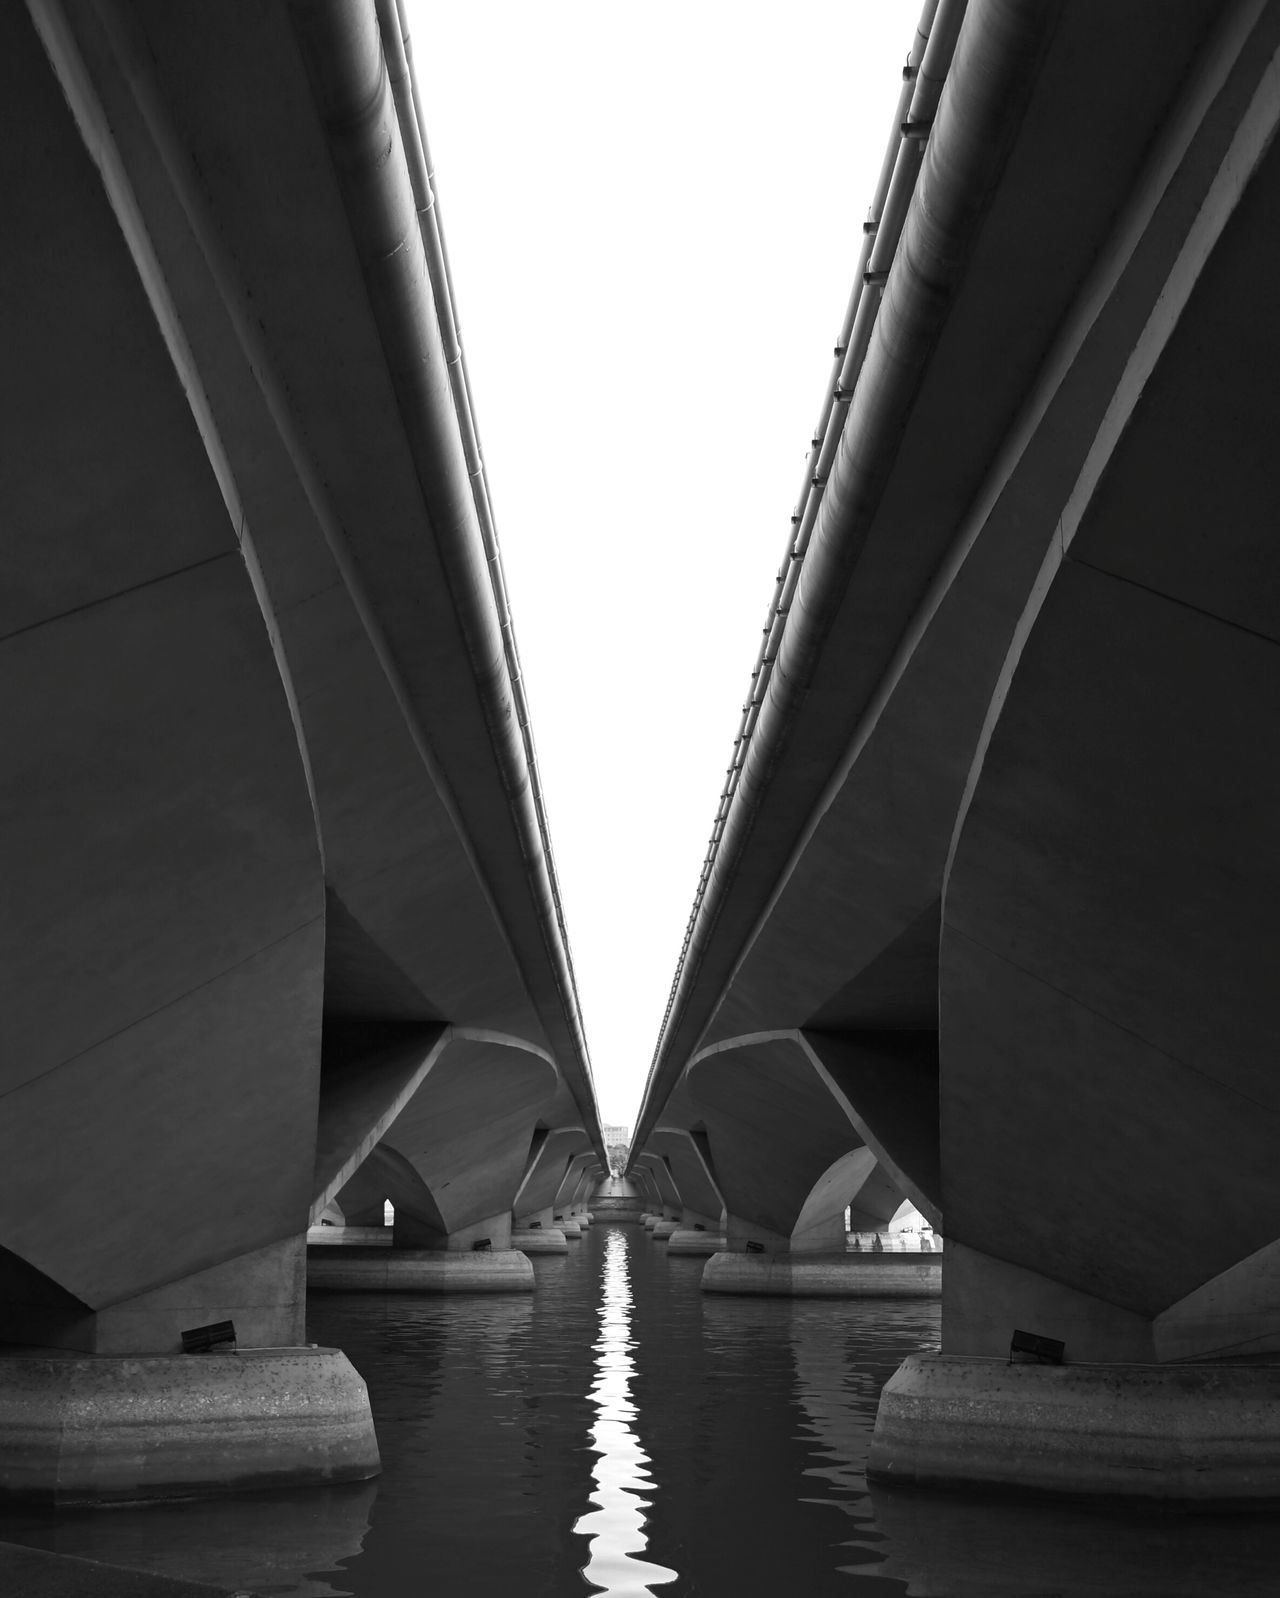 Bridge ViewfrOmbeLOw Urban Geometry Parallel Lines Learn & Shoot: Leading Lines Beauty From The Under Water Reflections Monochrome Photography Reflection_collection Reflection Water View From Below Urban Urbanexploration TakeoverContrast Adapted To The City